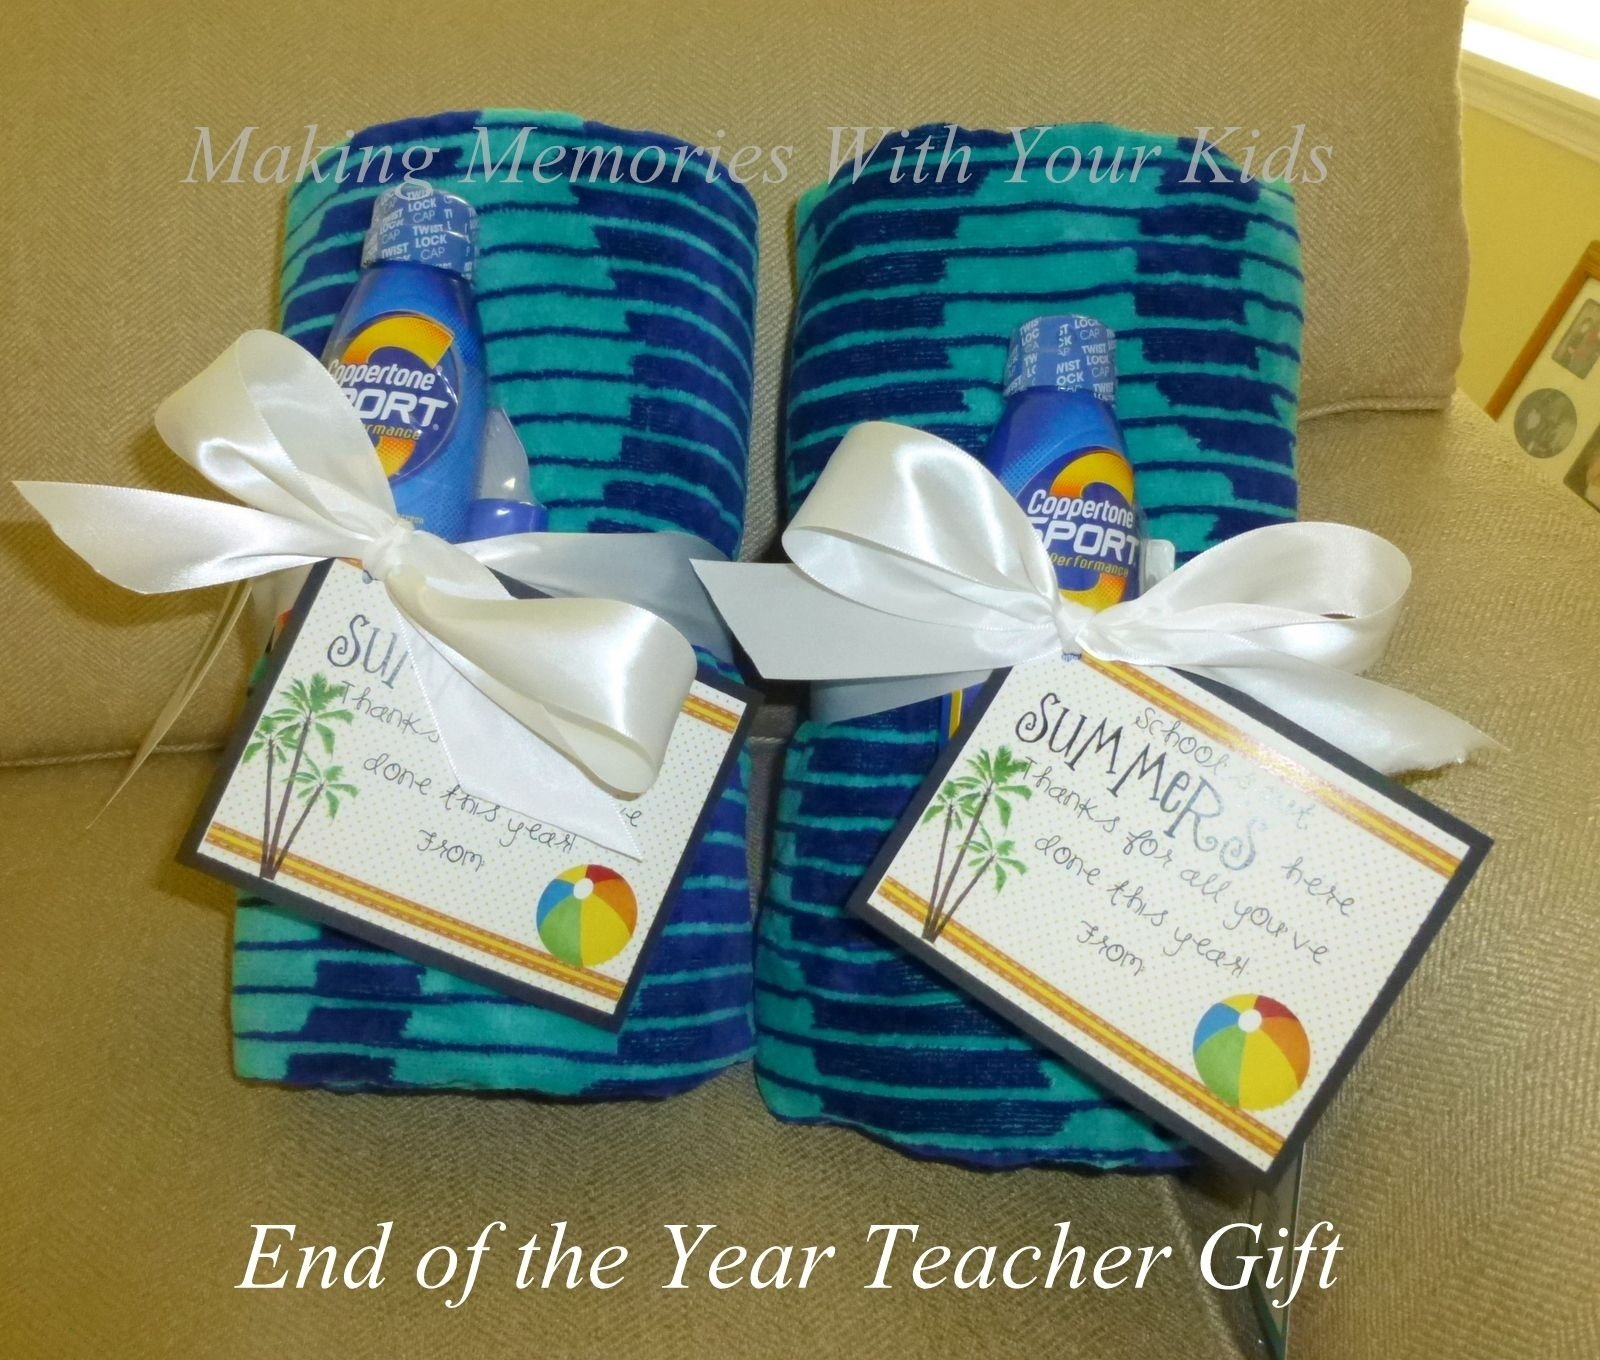 10 Stylish End Of The Year Teacher Gift Ideas end of year teacher gift google search gift ideas pinterest 3 2021